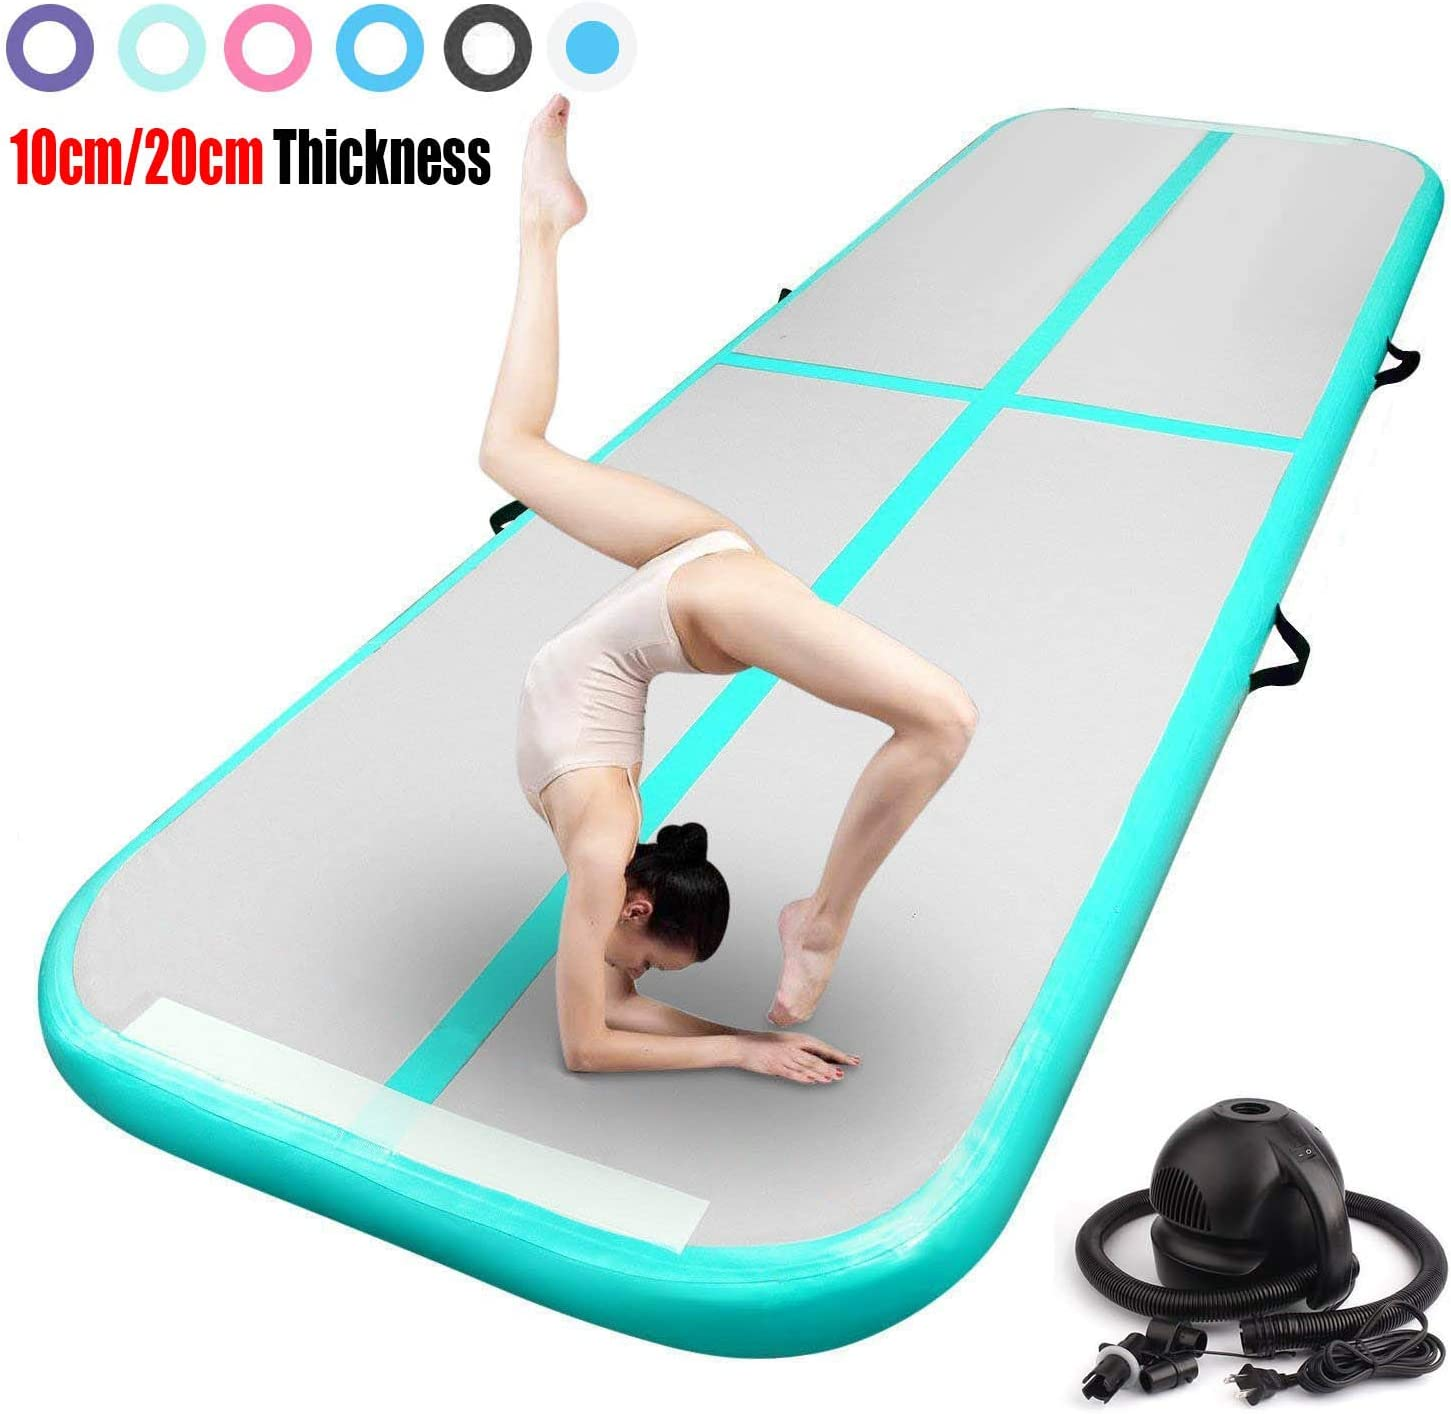 FBSPORT 13ft/16ft/20ft/23ft/26ft Inflatable Gymnastics Air Track Tumbling Mat 4/8 inches Thickness Airtrack Mats for Home Use/Training/Cheerleading/Yoga/Water with Pump